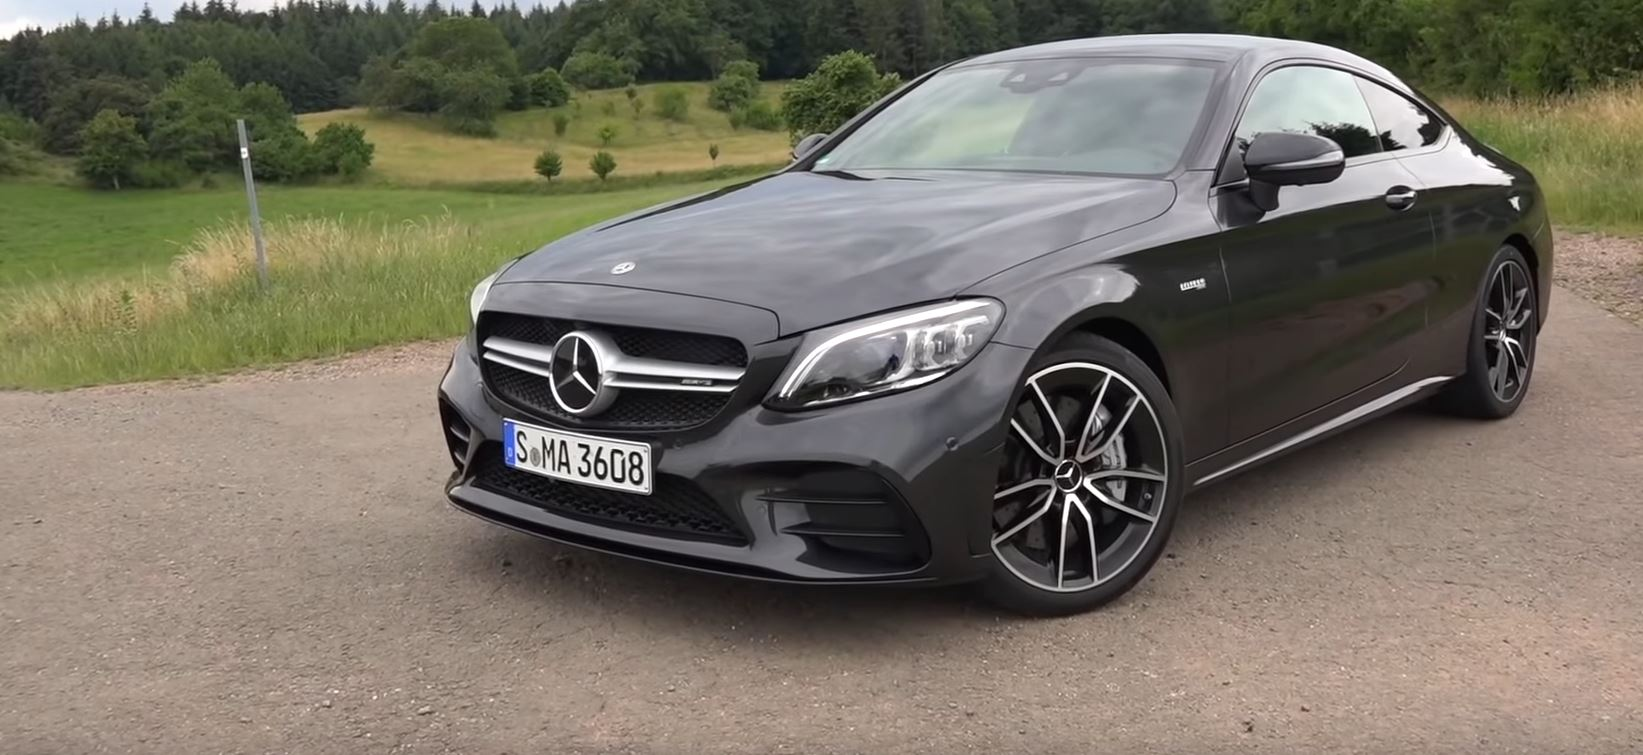 390 HP 2019 Mercedes-AMG C43 Hits 100 KM/H in 4 5 Seconds